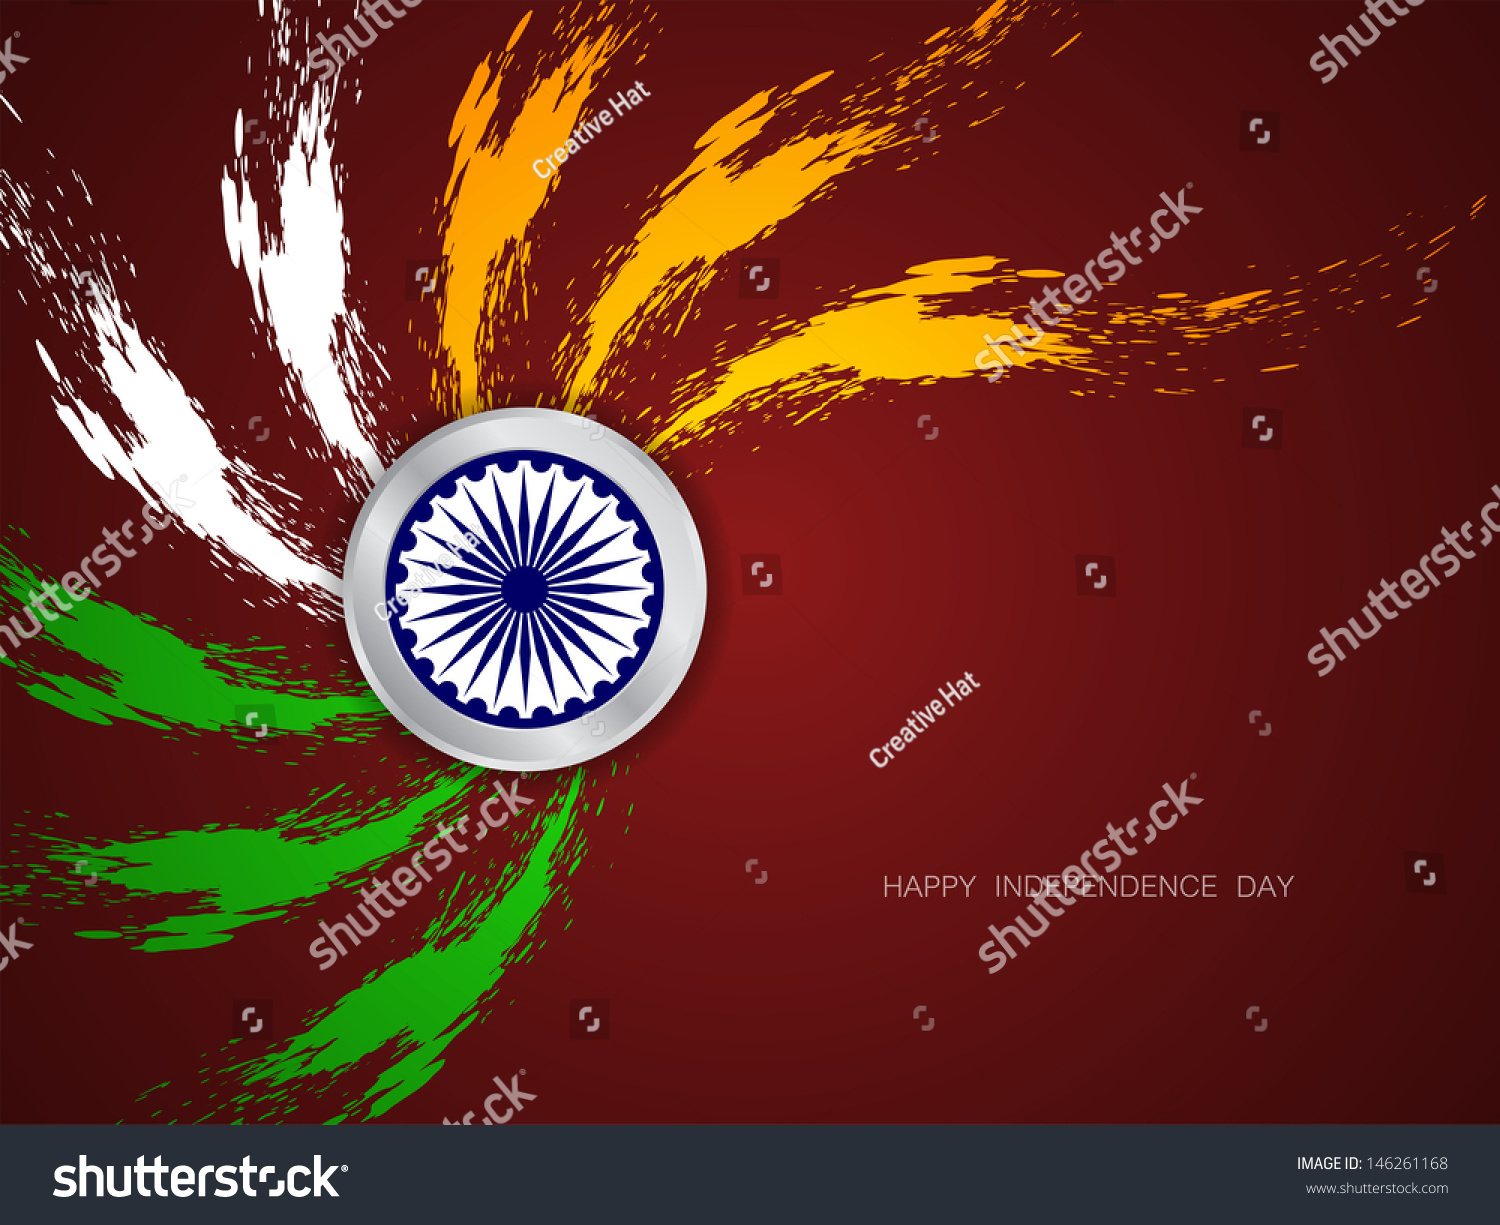 Indian Flag Theme: Beautiful Grungy Indian Flag Theme Design On Brown Color